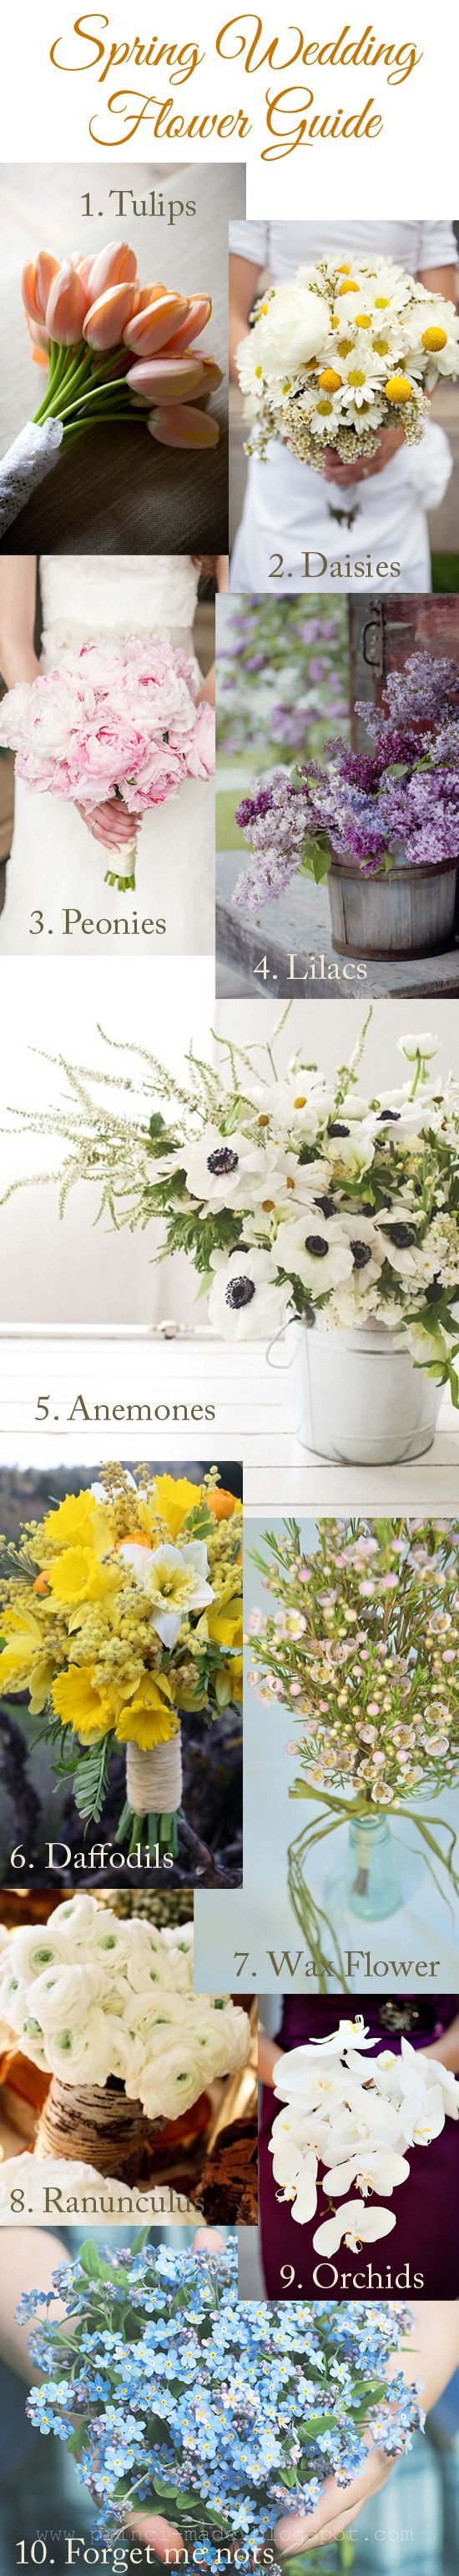 By sticking with blooms that are found during the Spring time, you can save cost and have fresh flowers at your wedding without breaking the bank on out-of-season blossoms. Description from haydenolivia.com. I searched for this on bing.com/images